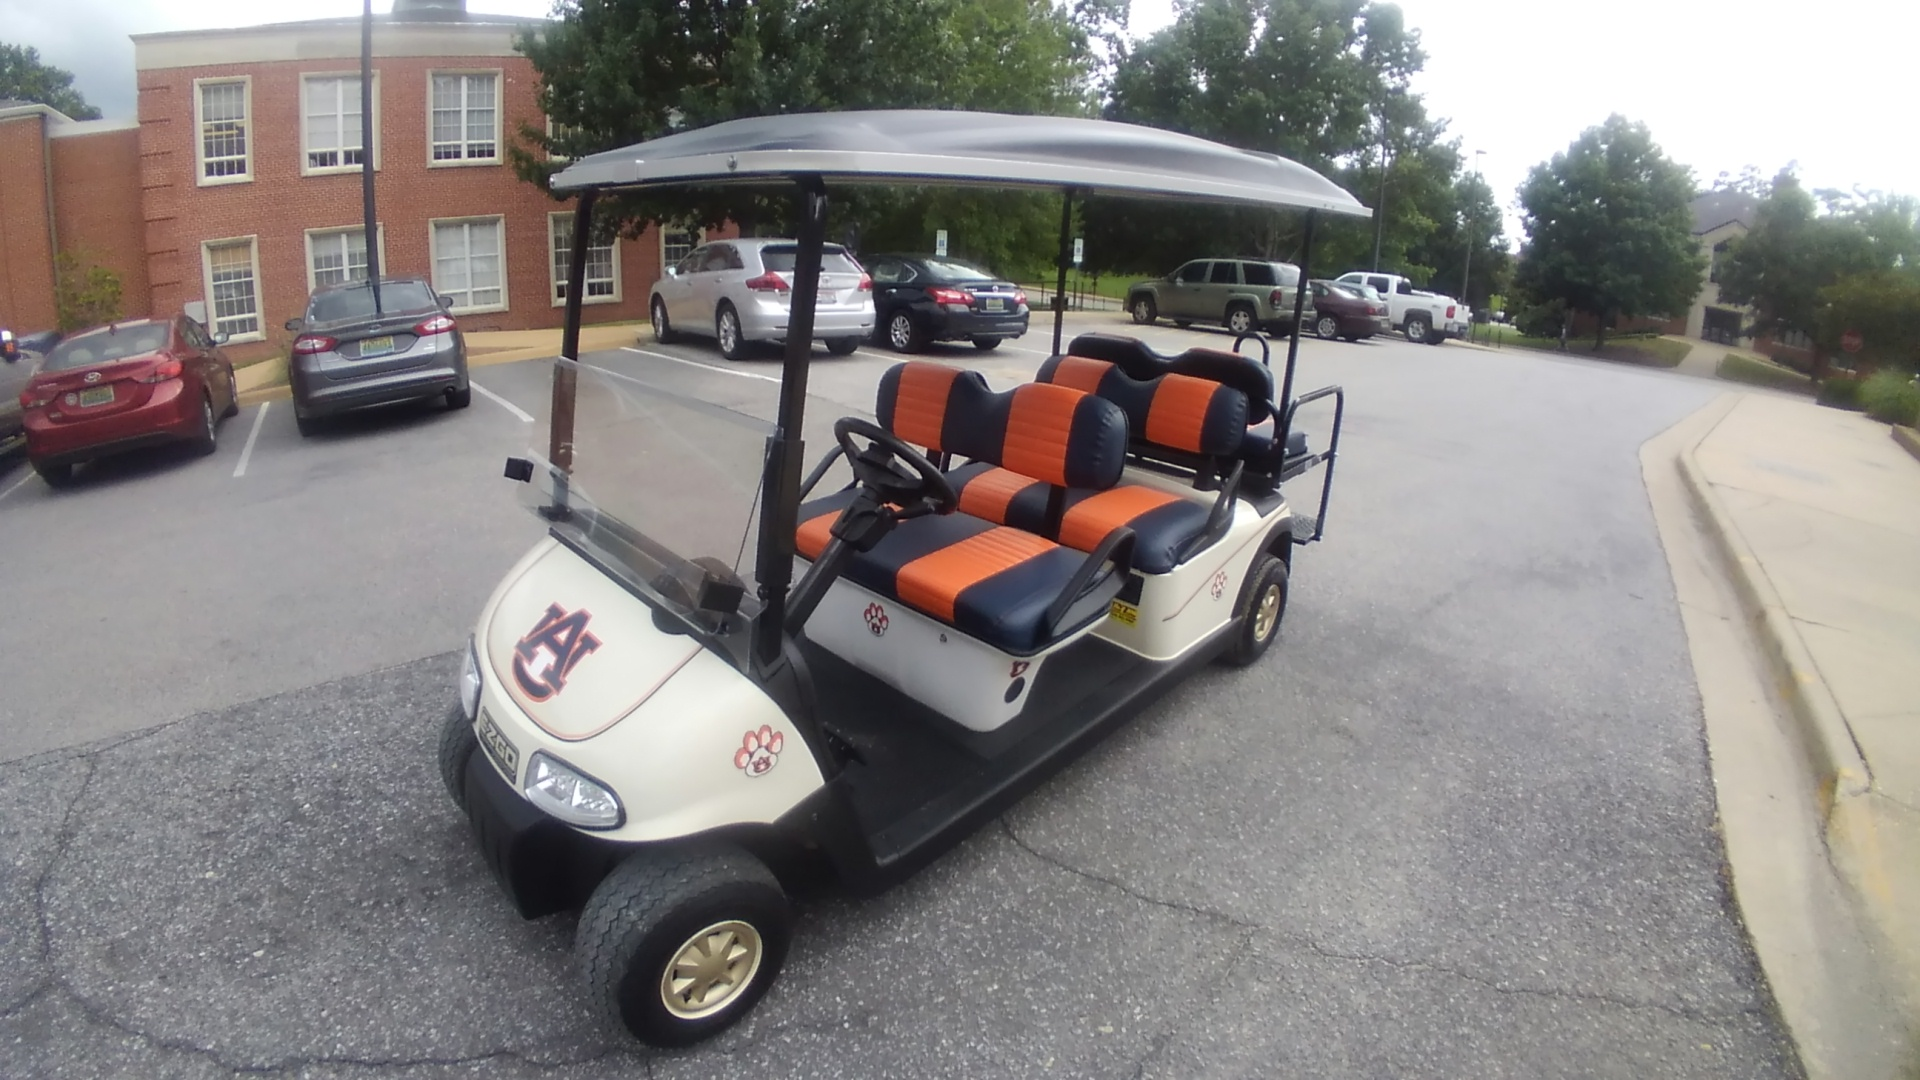 TNT Outers Golf Carts, Trailers, Truck Accessories » Golf Carts on auburn university golf club clothing, auburn university club golf course, beach buggy cart,